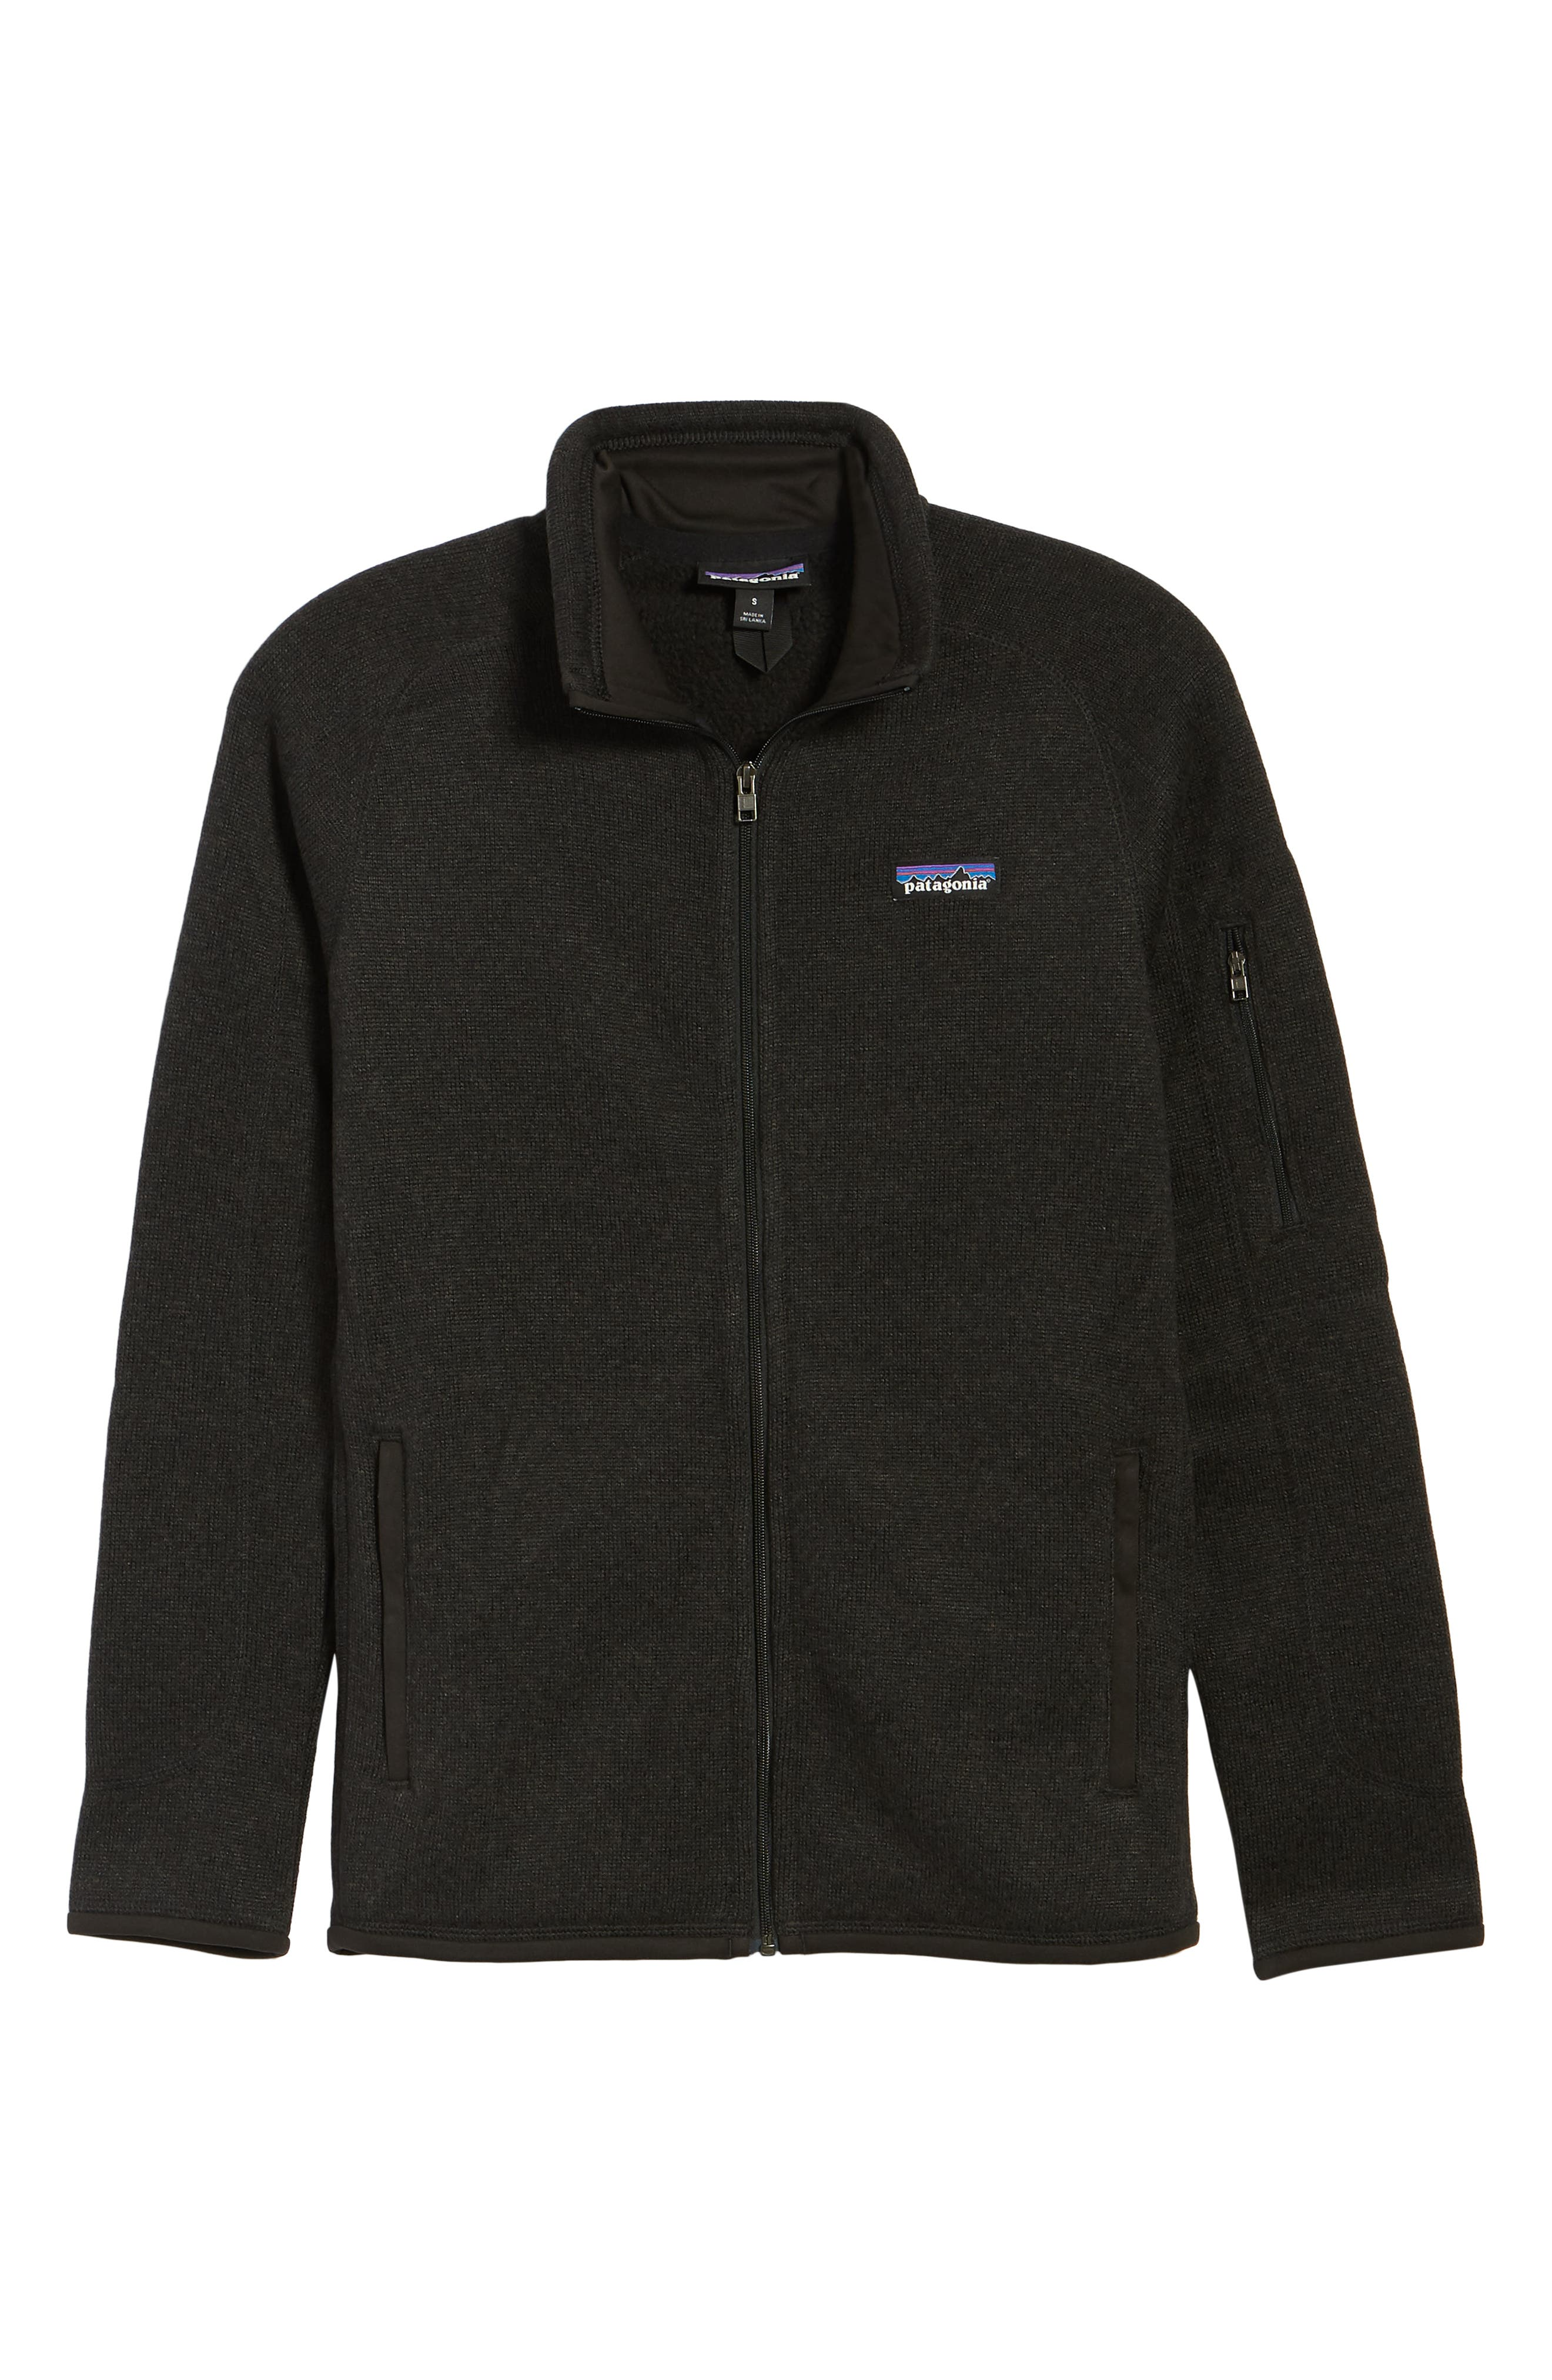 PATAGONIA, 'Better Sweater' Jacket, Alternate thumbnail 2, color, BLACK